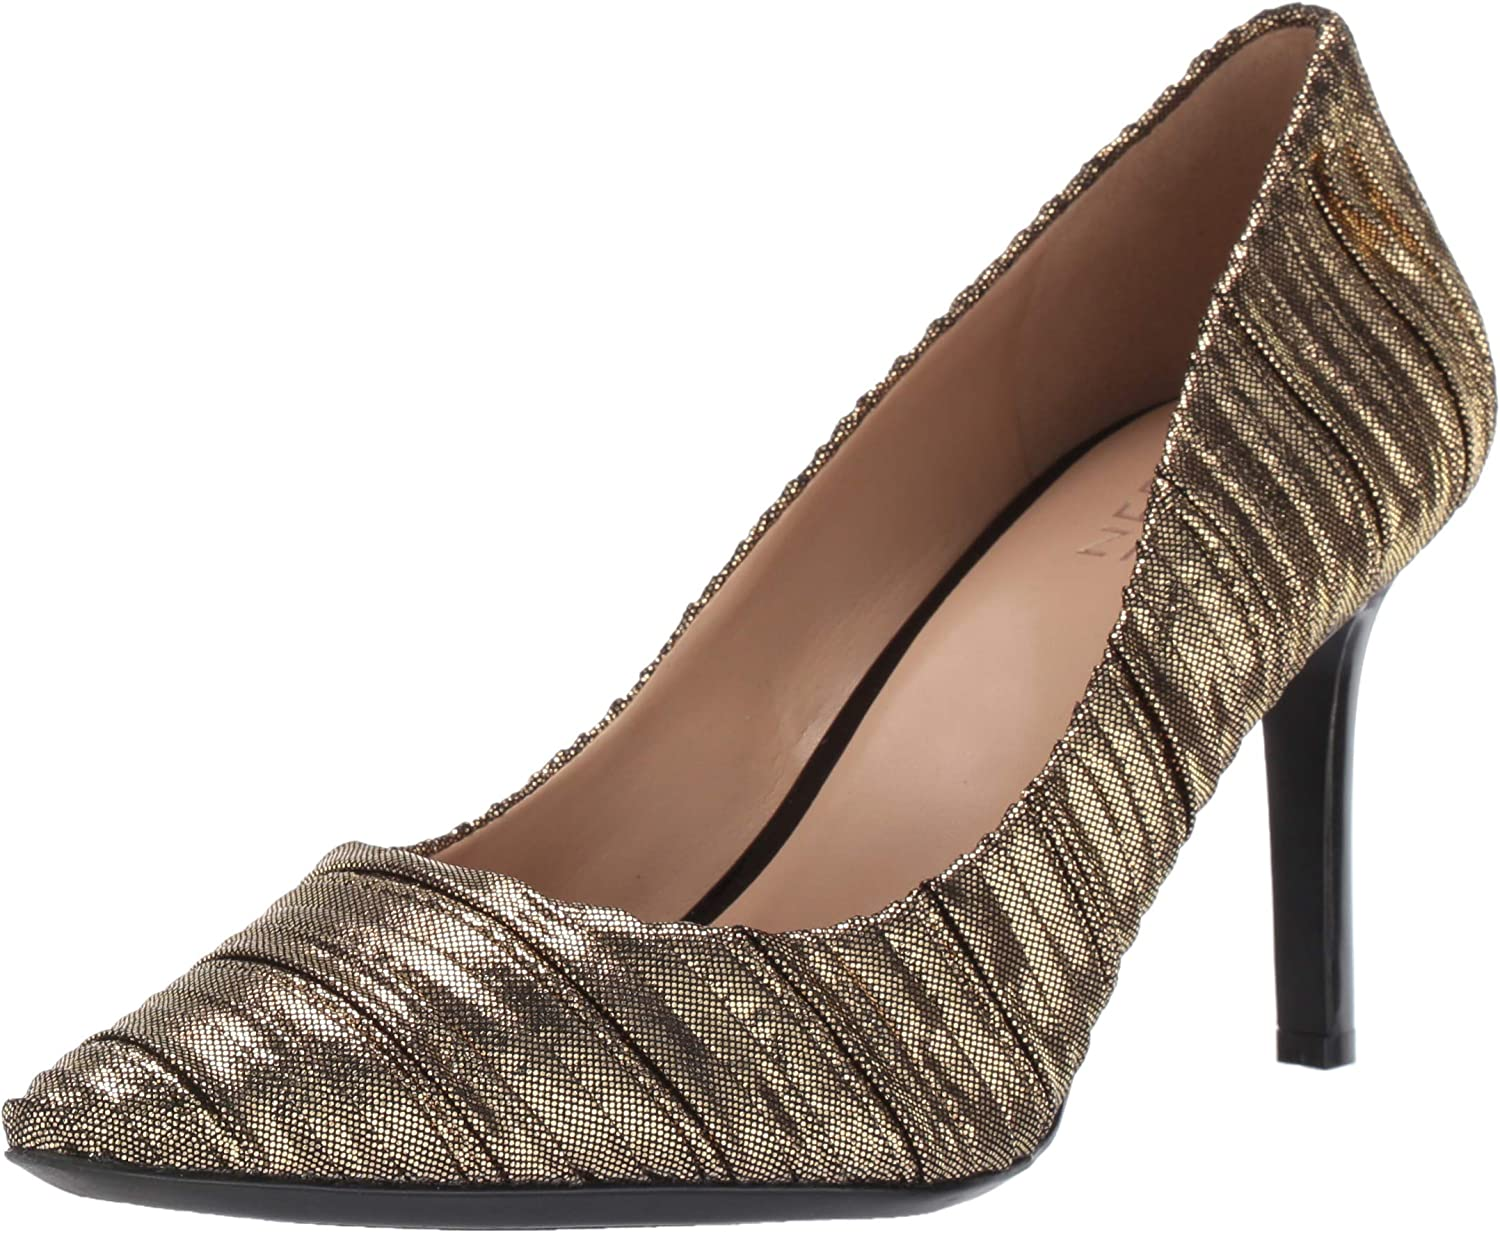 Naturalizer Free shipping anywhere in the nation New item Women's Anna Pumps